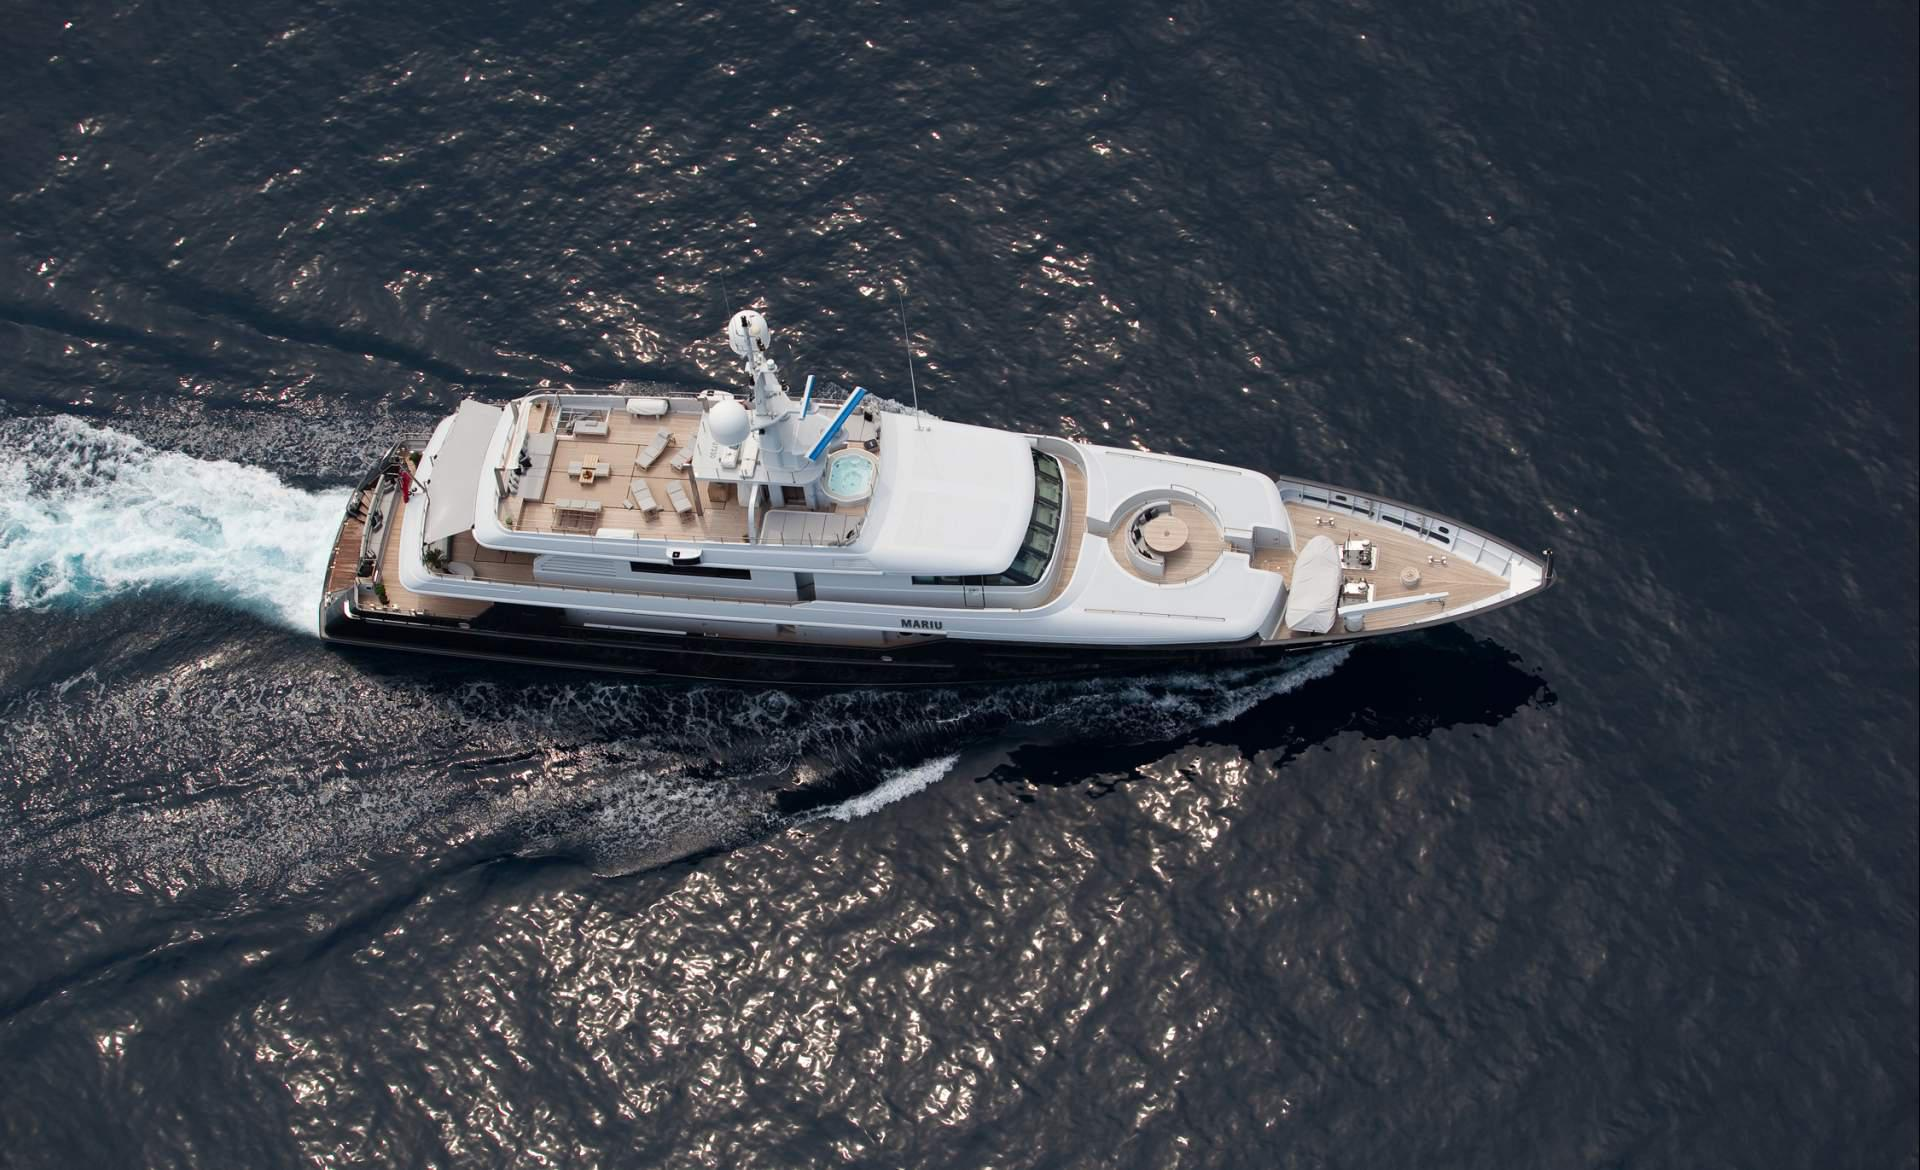 Yacht MARIU - Profile From Above